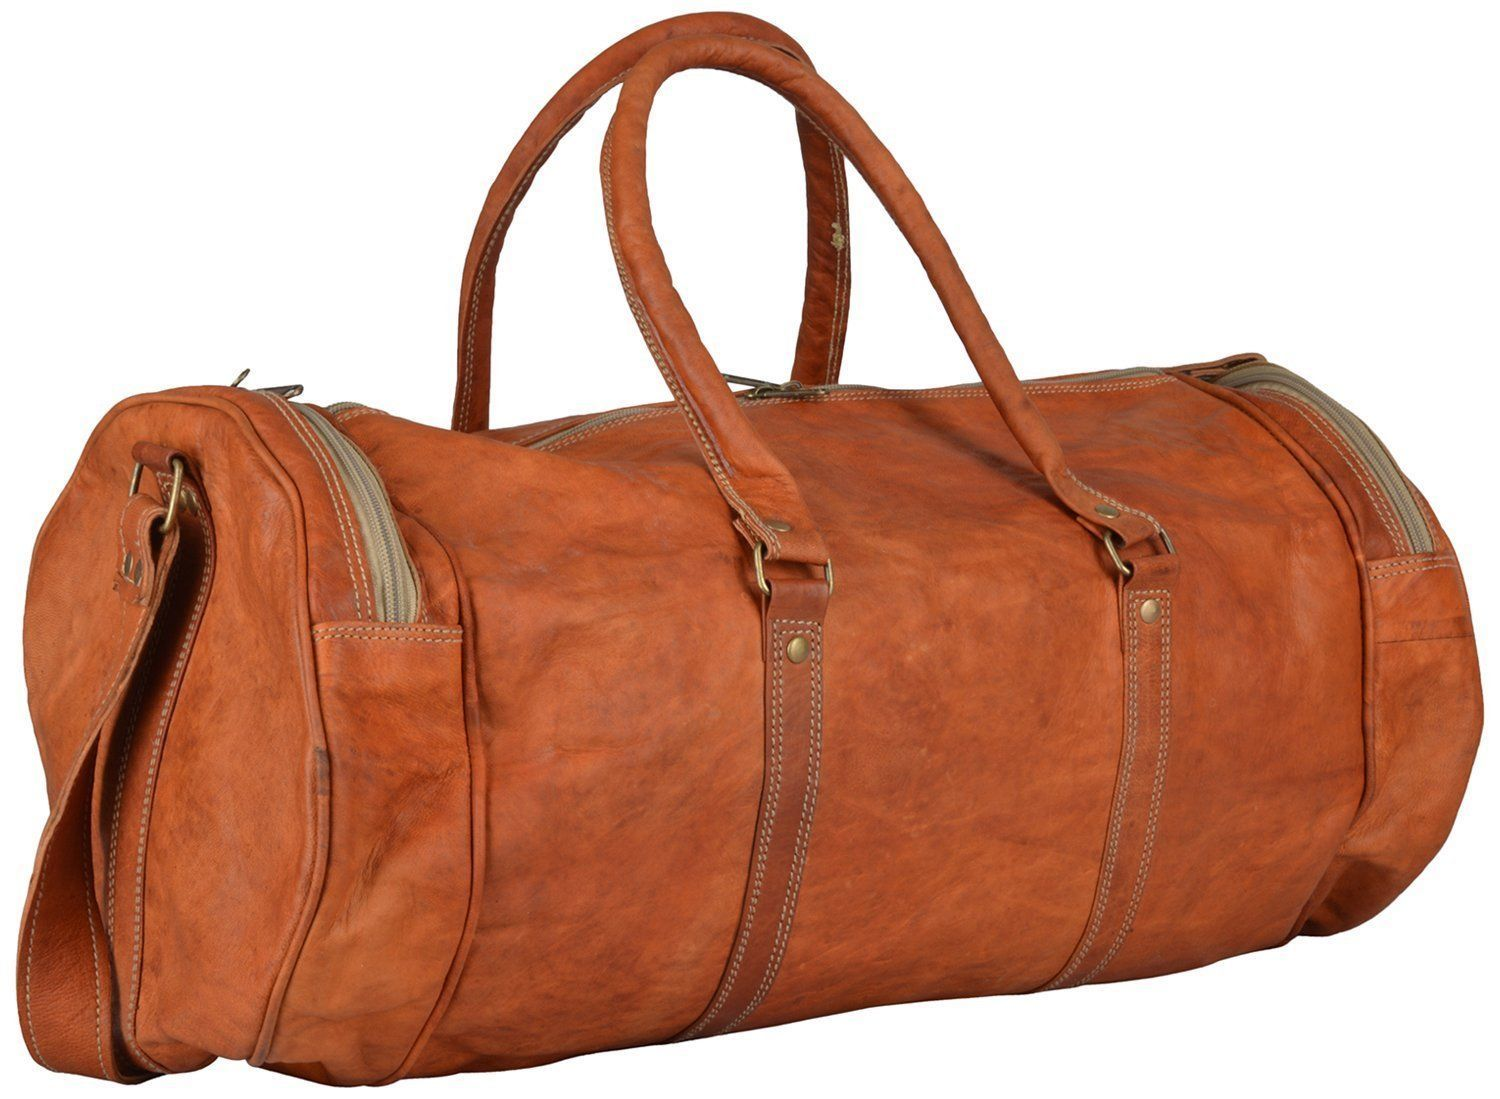 New Unisex Travel Brown Rustic Leather Casual Duffel / Gym Co lour Brown Bags